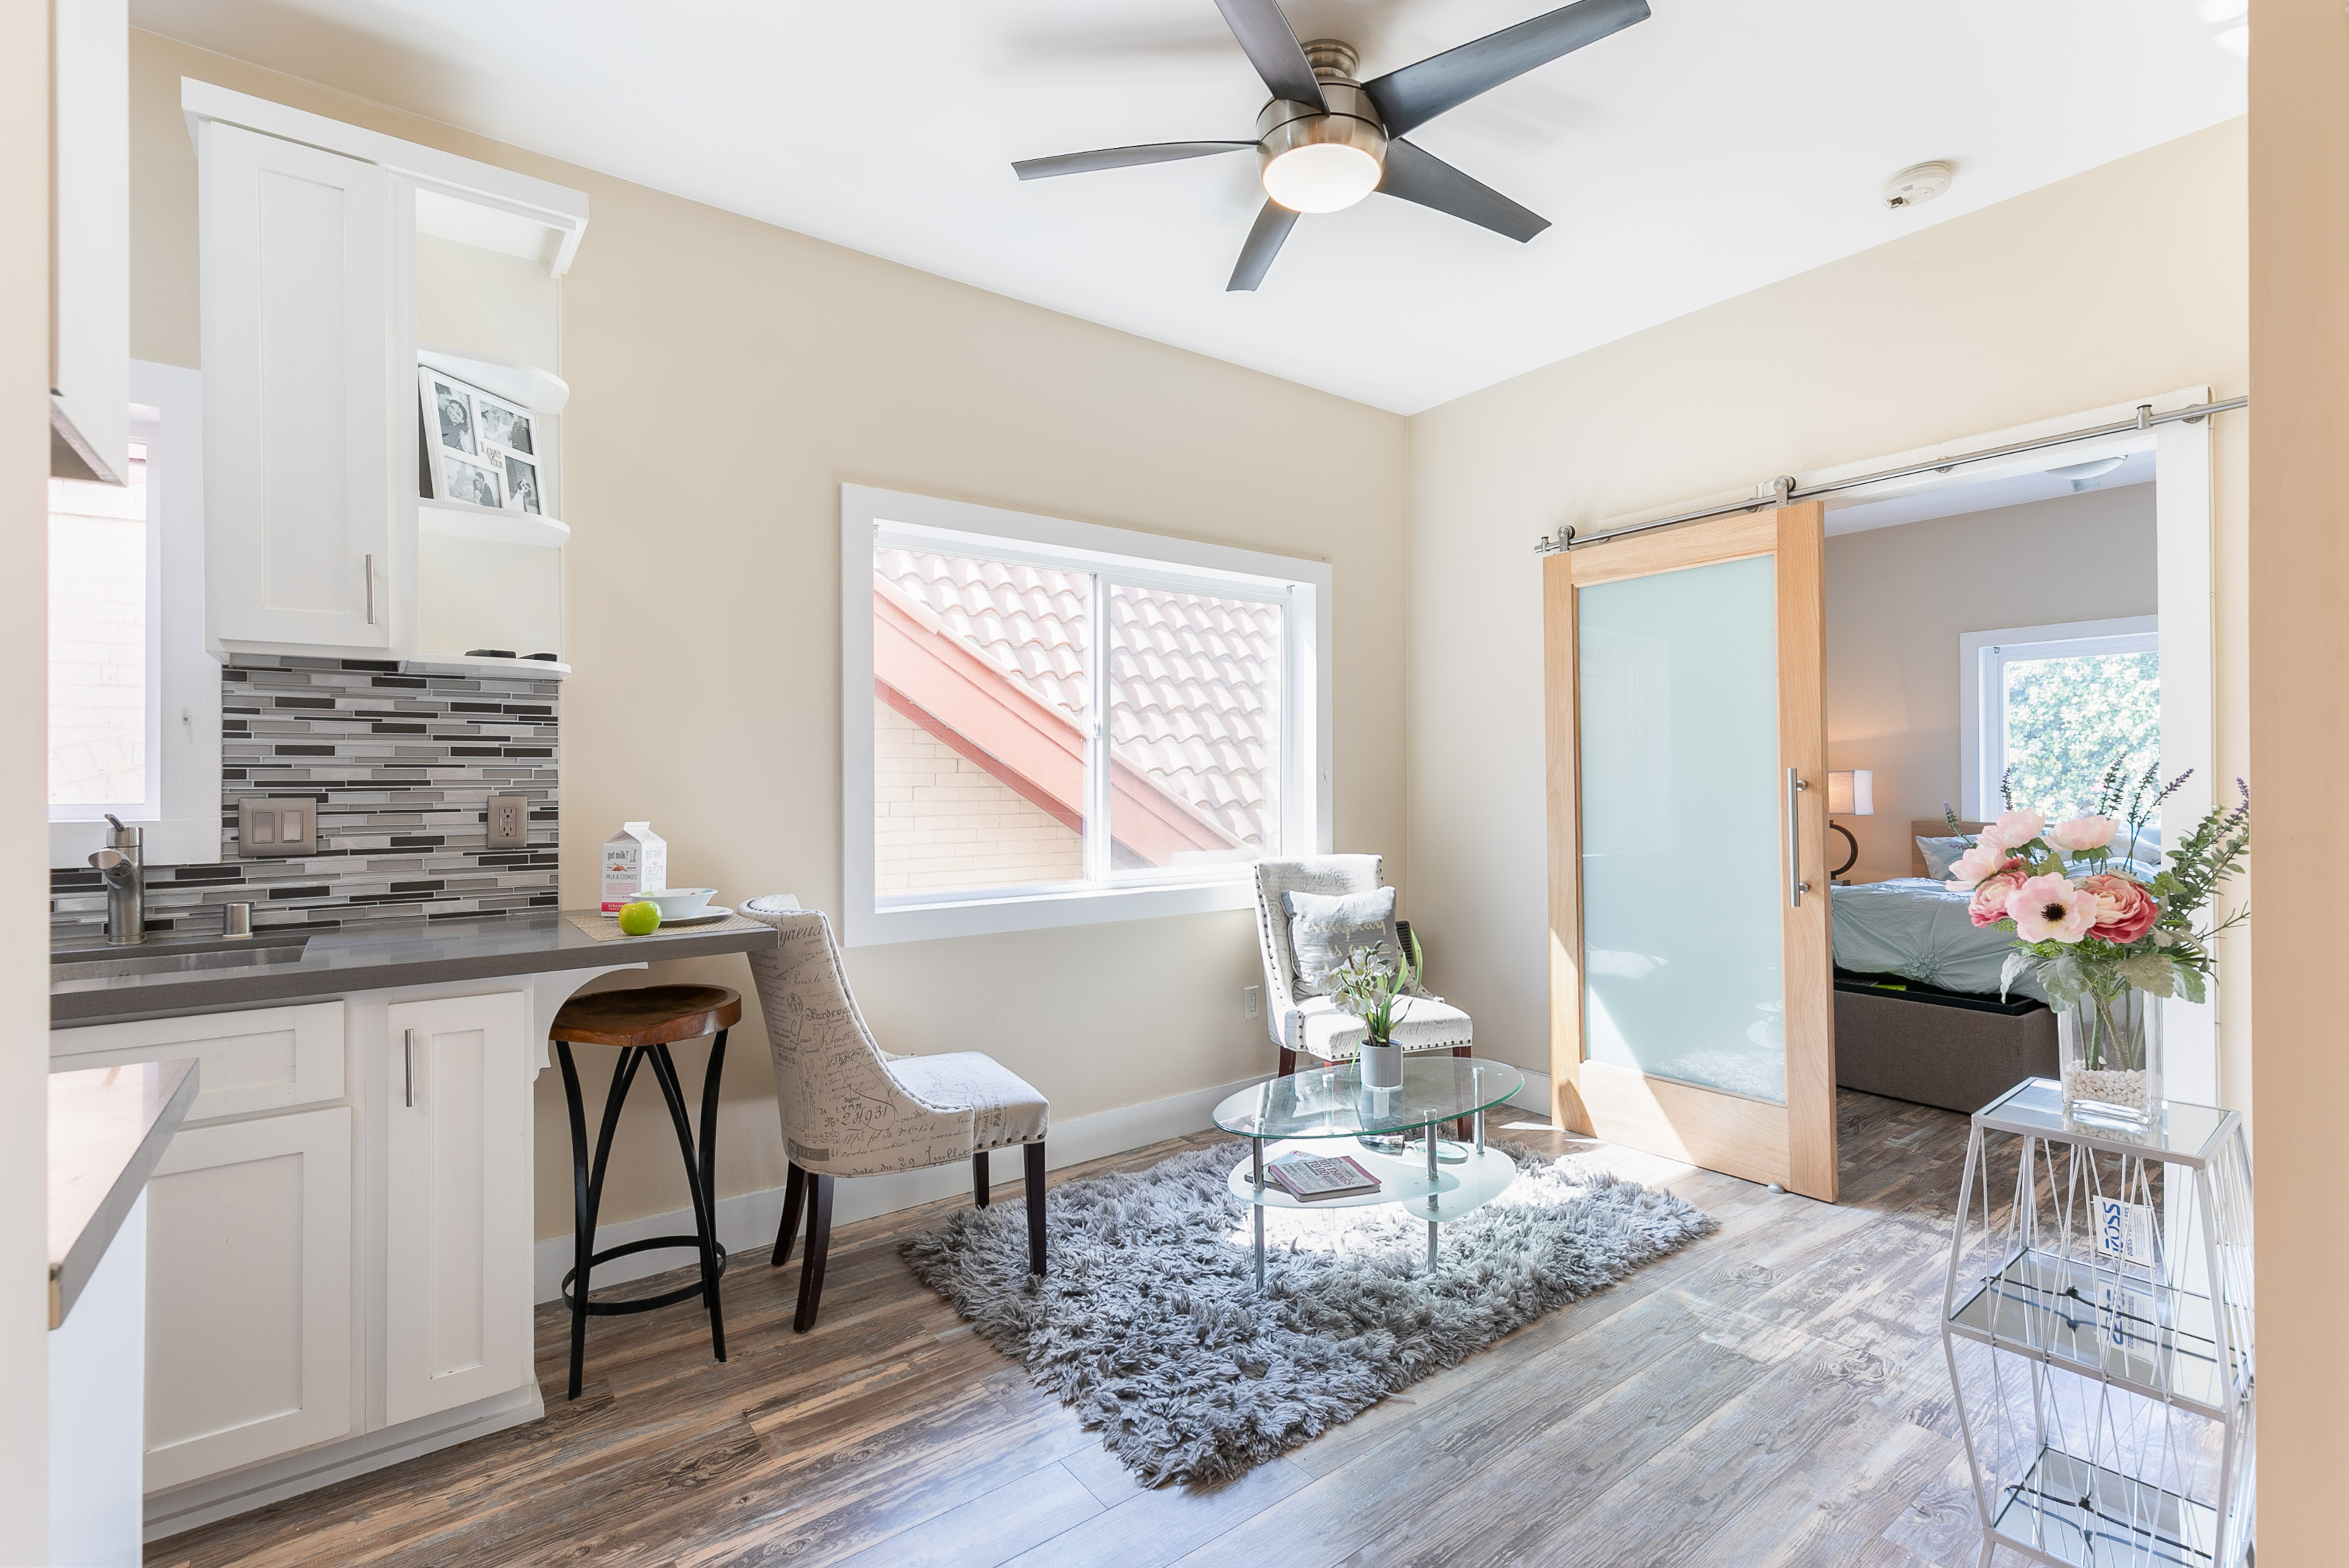 Adorable 1BD/1BA + Den Near Venice Beach with In-Unit Washer & Dryer!